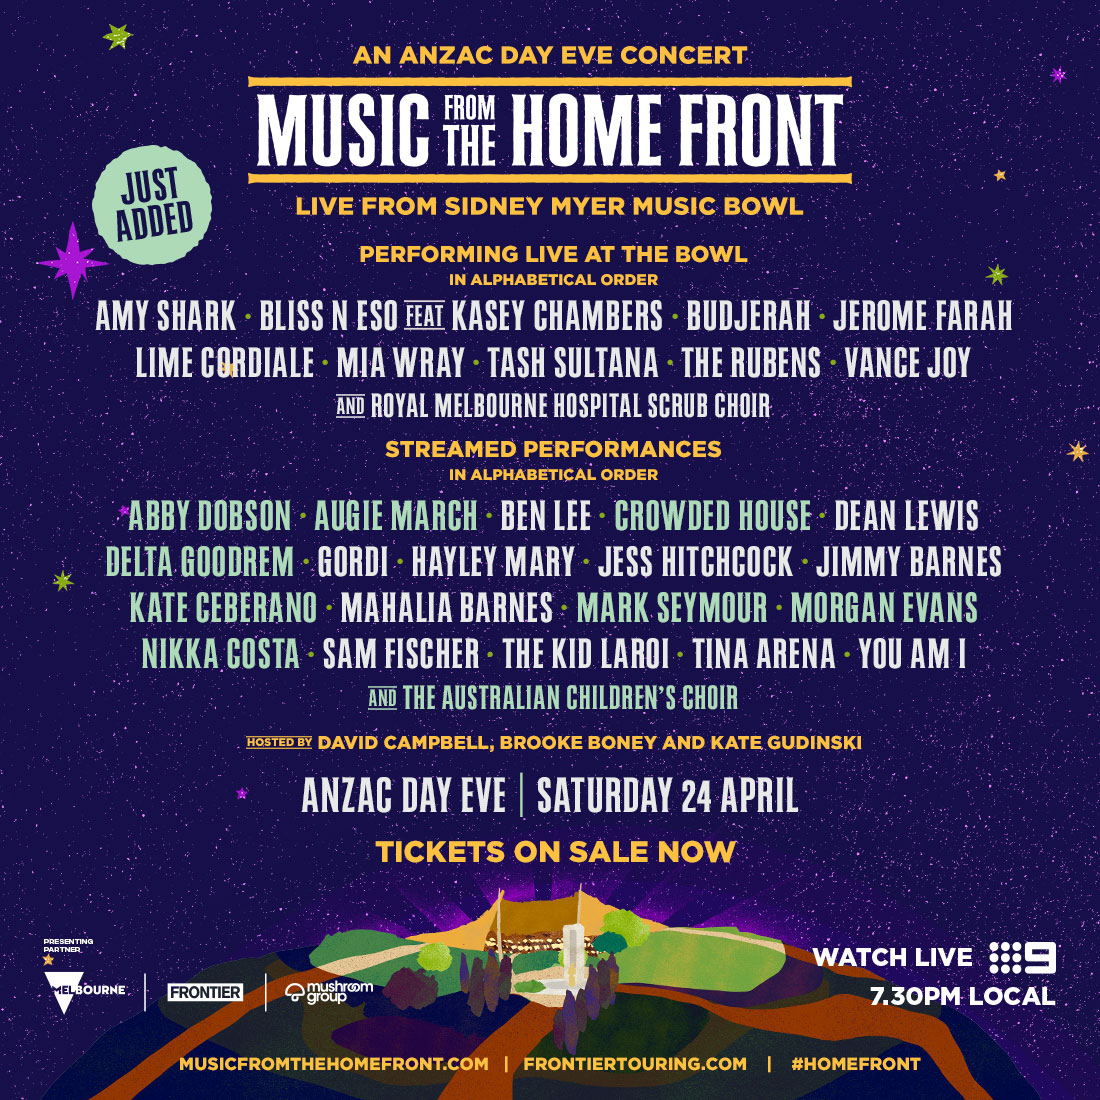 Music From The Home Front 2021 | Televised ANZAC Day Eve – Sat 24 Apr | More names added to the line-up!